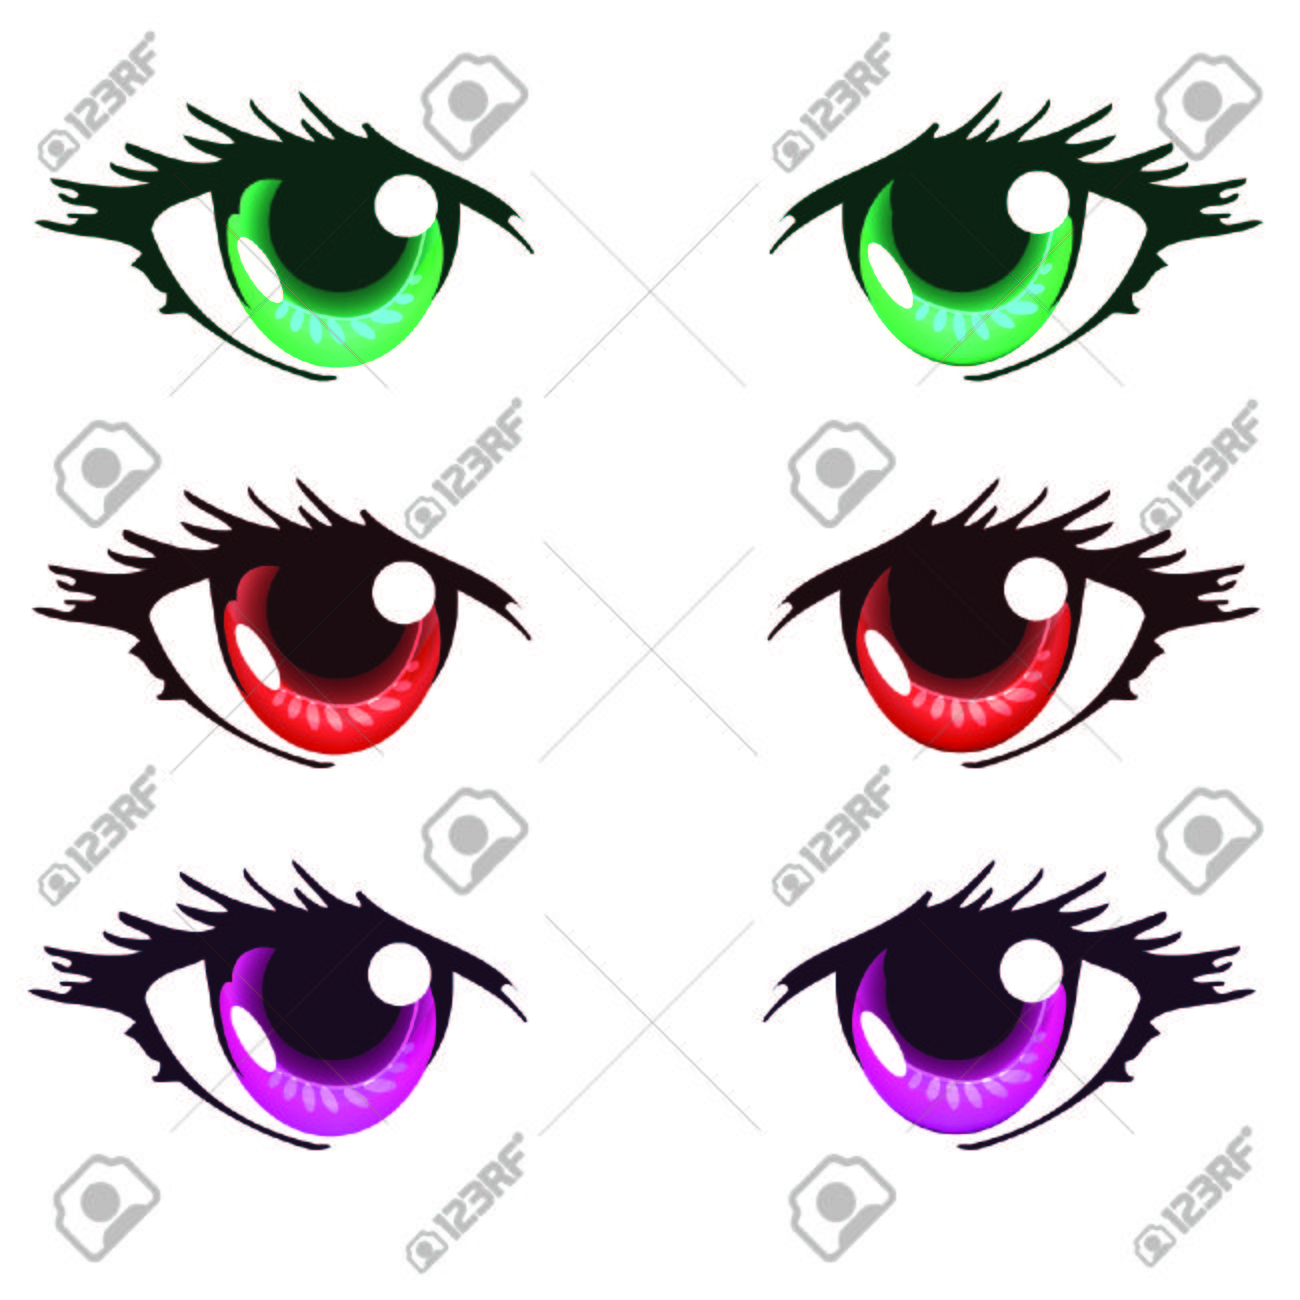 Green Red And Purple Color Anime Eyes Royalty Free Cliparts, Vectors ...